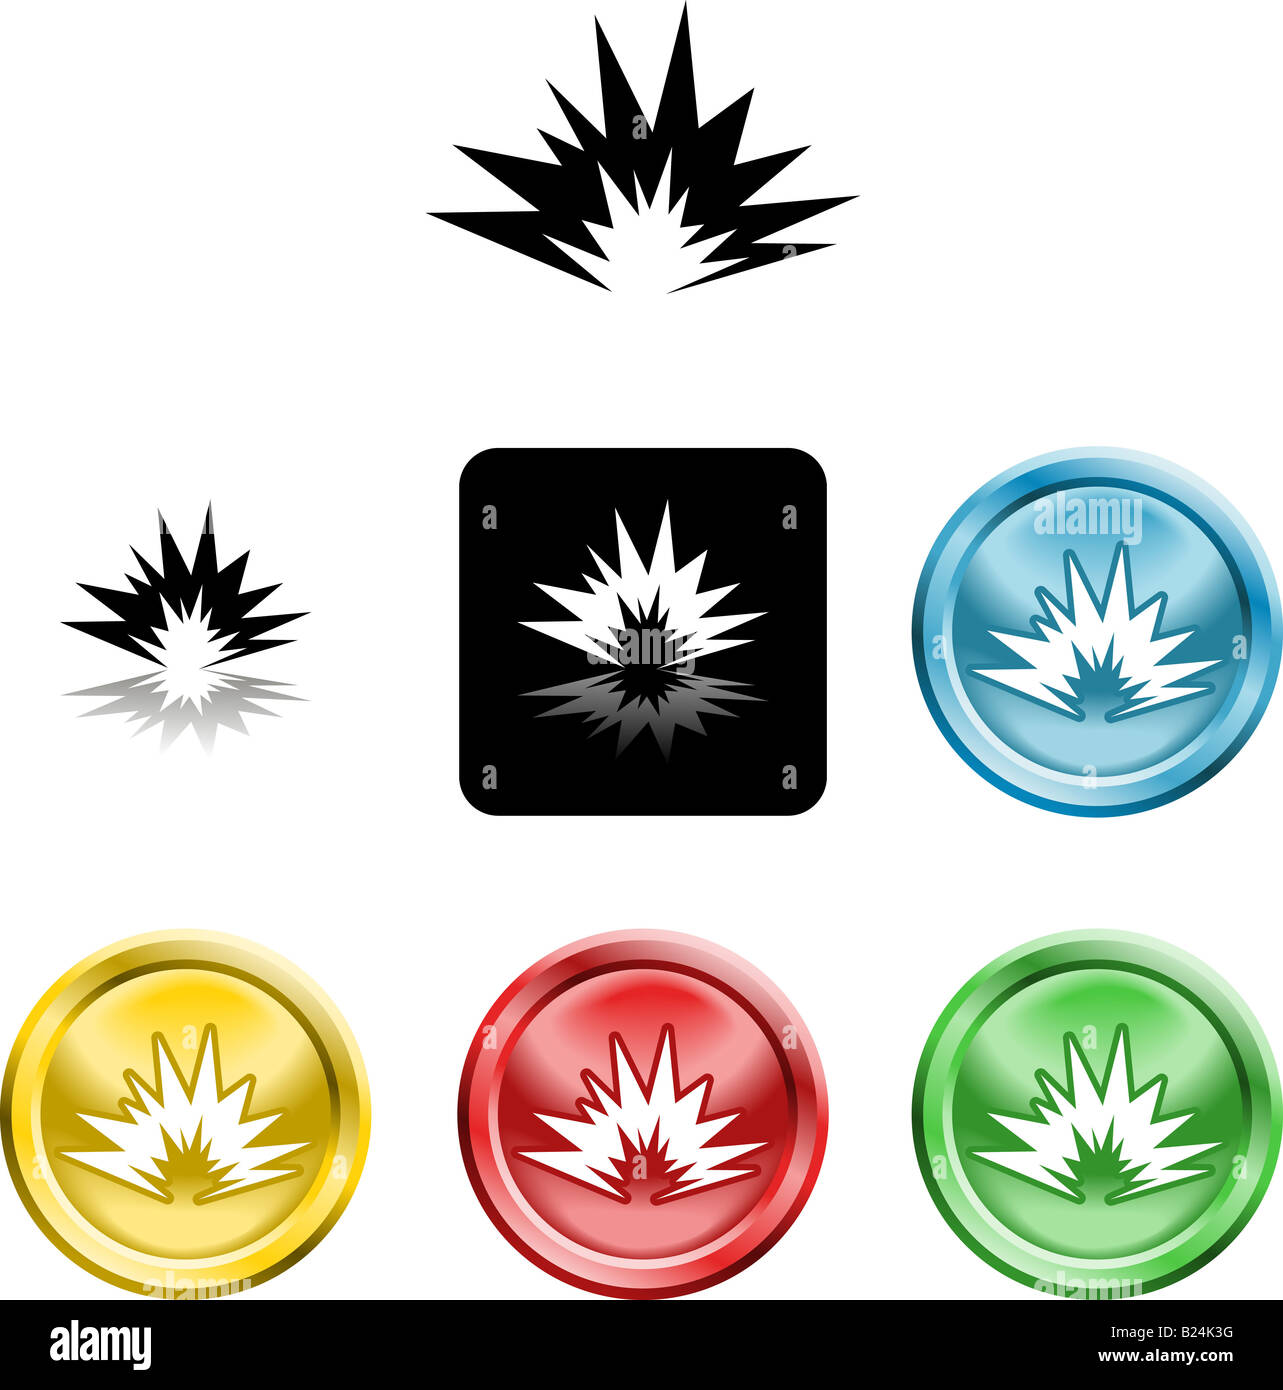 Several versions of an icon symbol of a stylised explosion - Stock Image